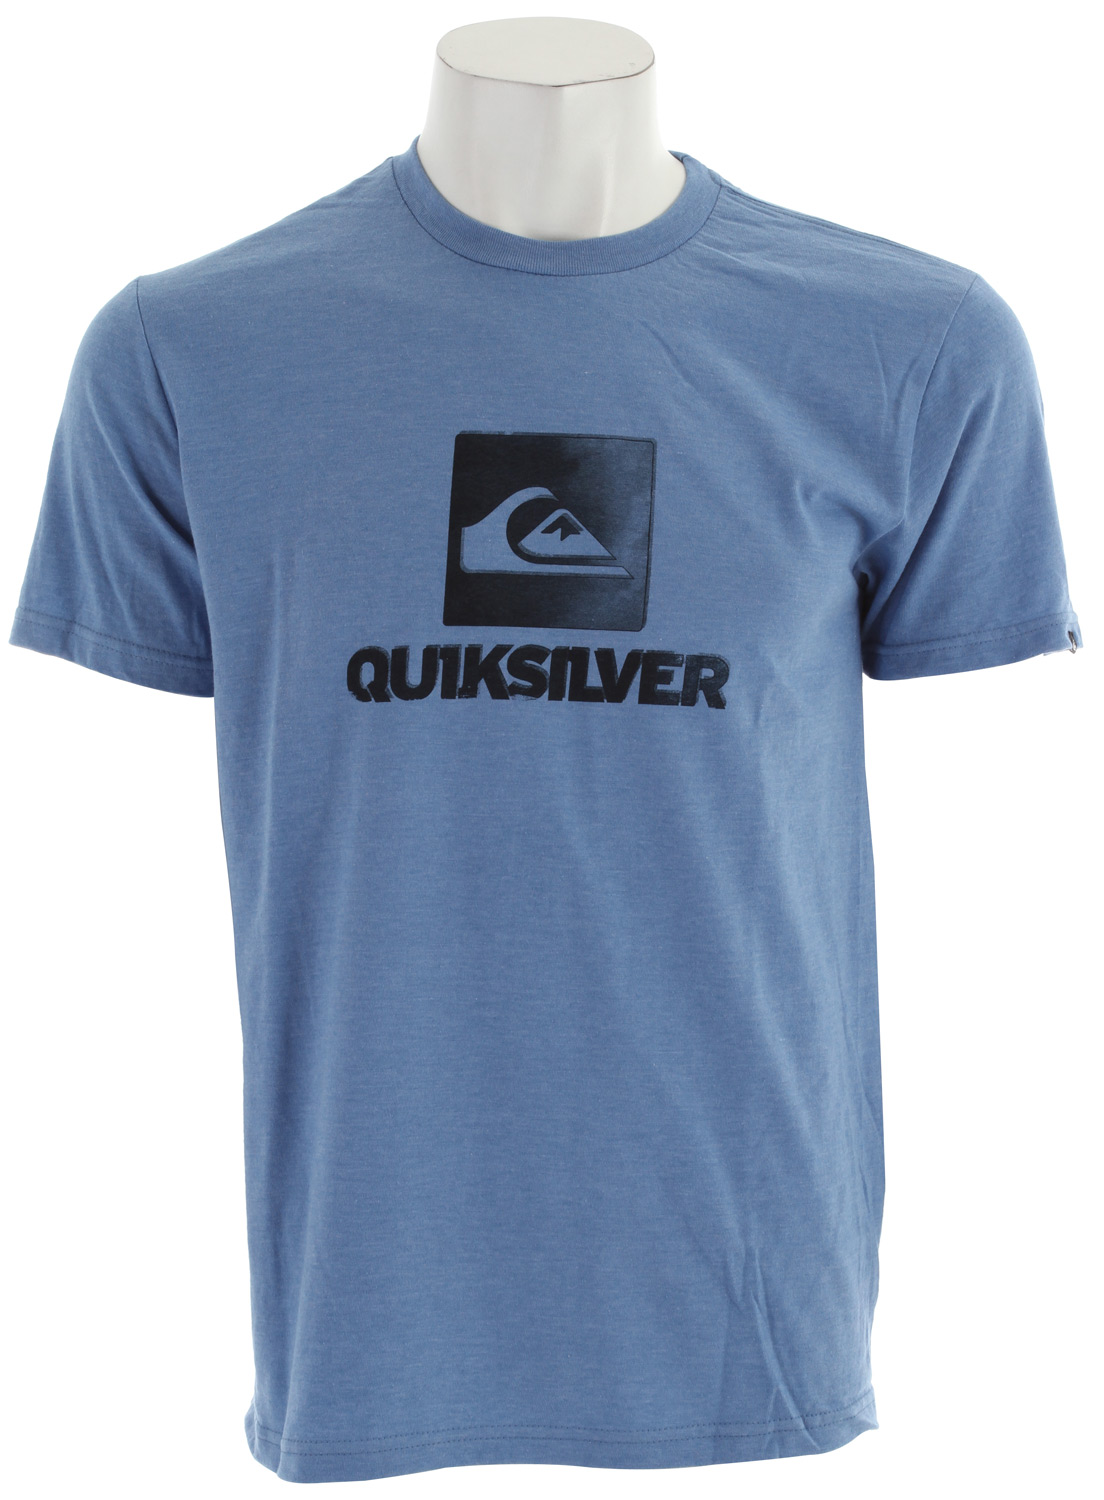 Surf Key Features of The Quiksilver Southbound T-Shirt: Regular Fit Crew Neck Short Sleeve 22 singles ringspun jersey SOLIDS: 100% cotton HEATHERS: 50% cotton 50% polyester Regular fit - $20.00